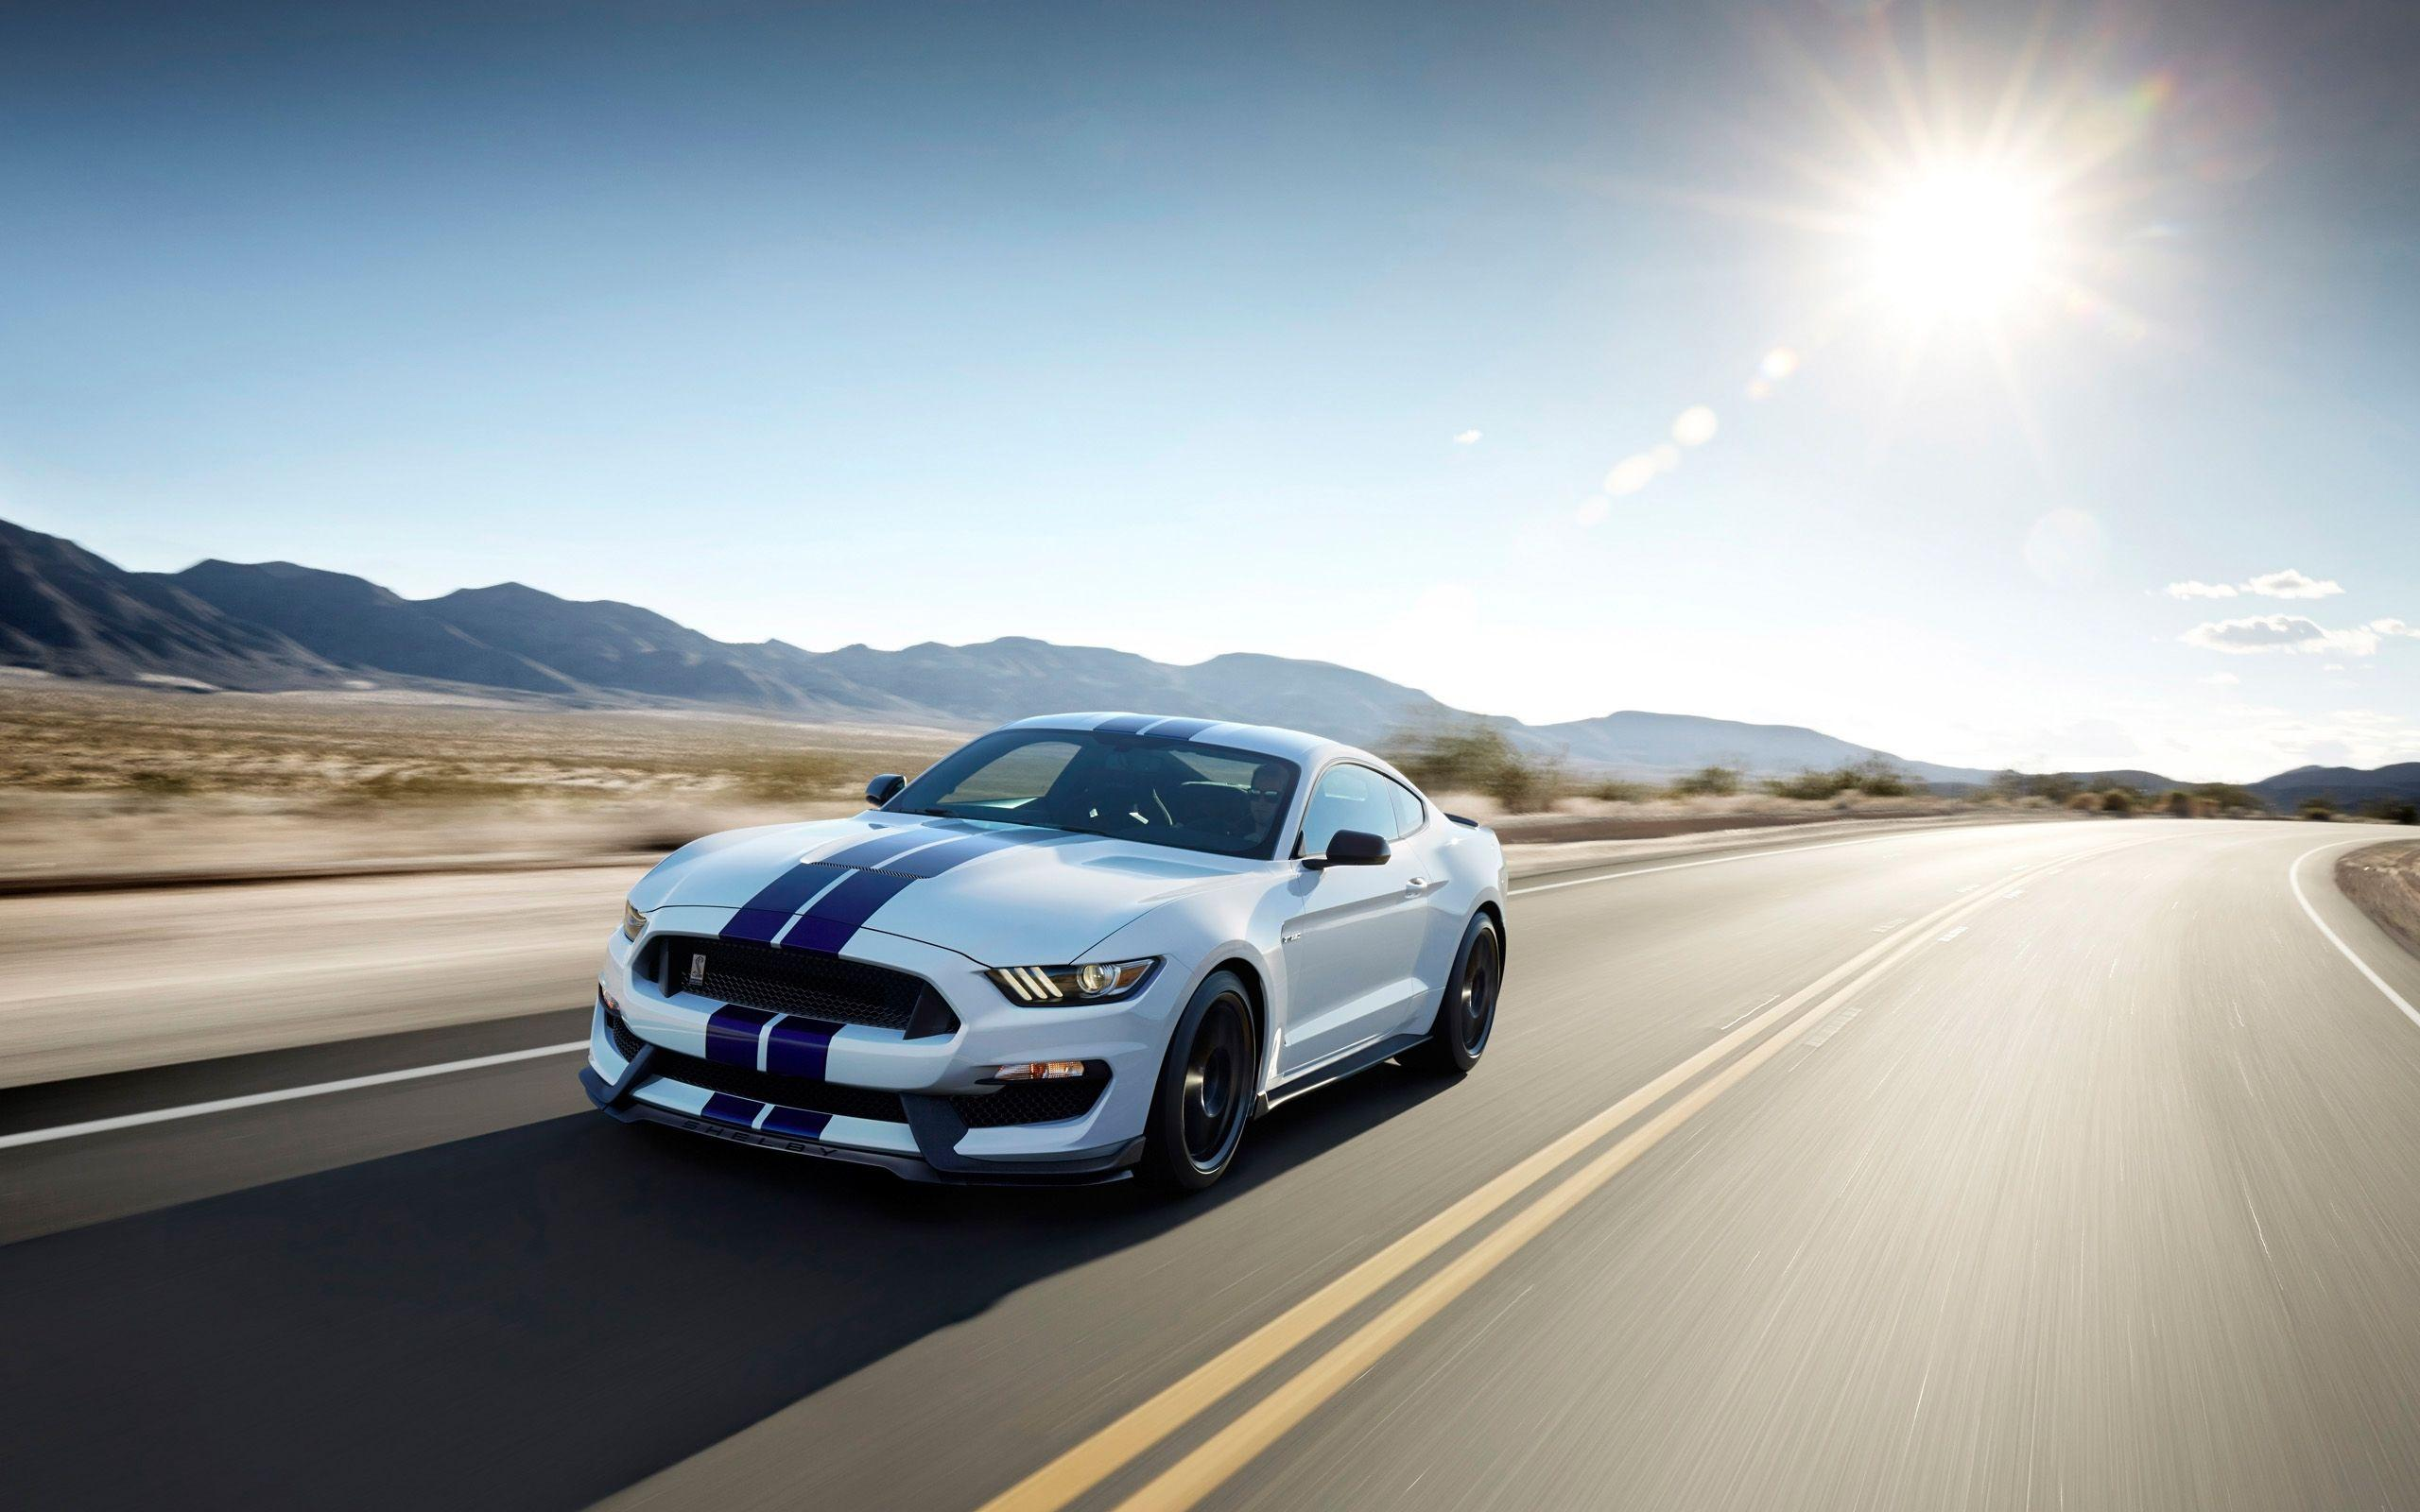 2015 Ford Shelby GT350 Mustang Wallpaper | HD Car Wallpapers